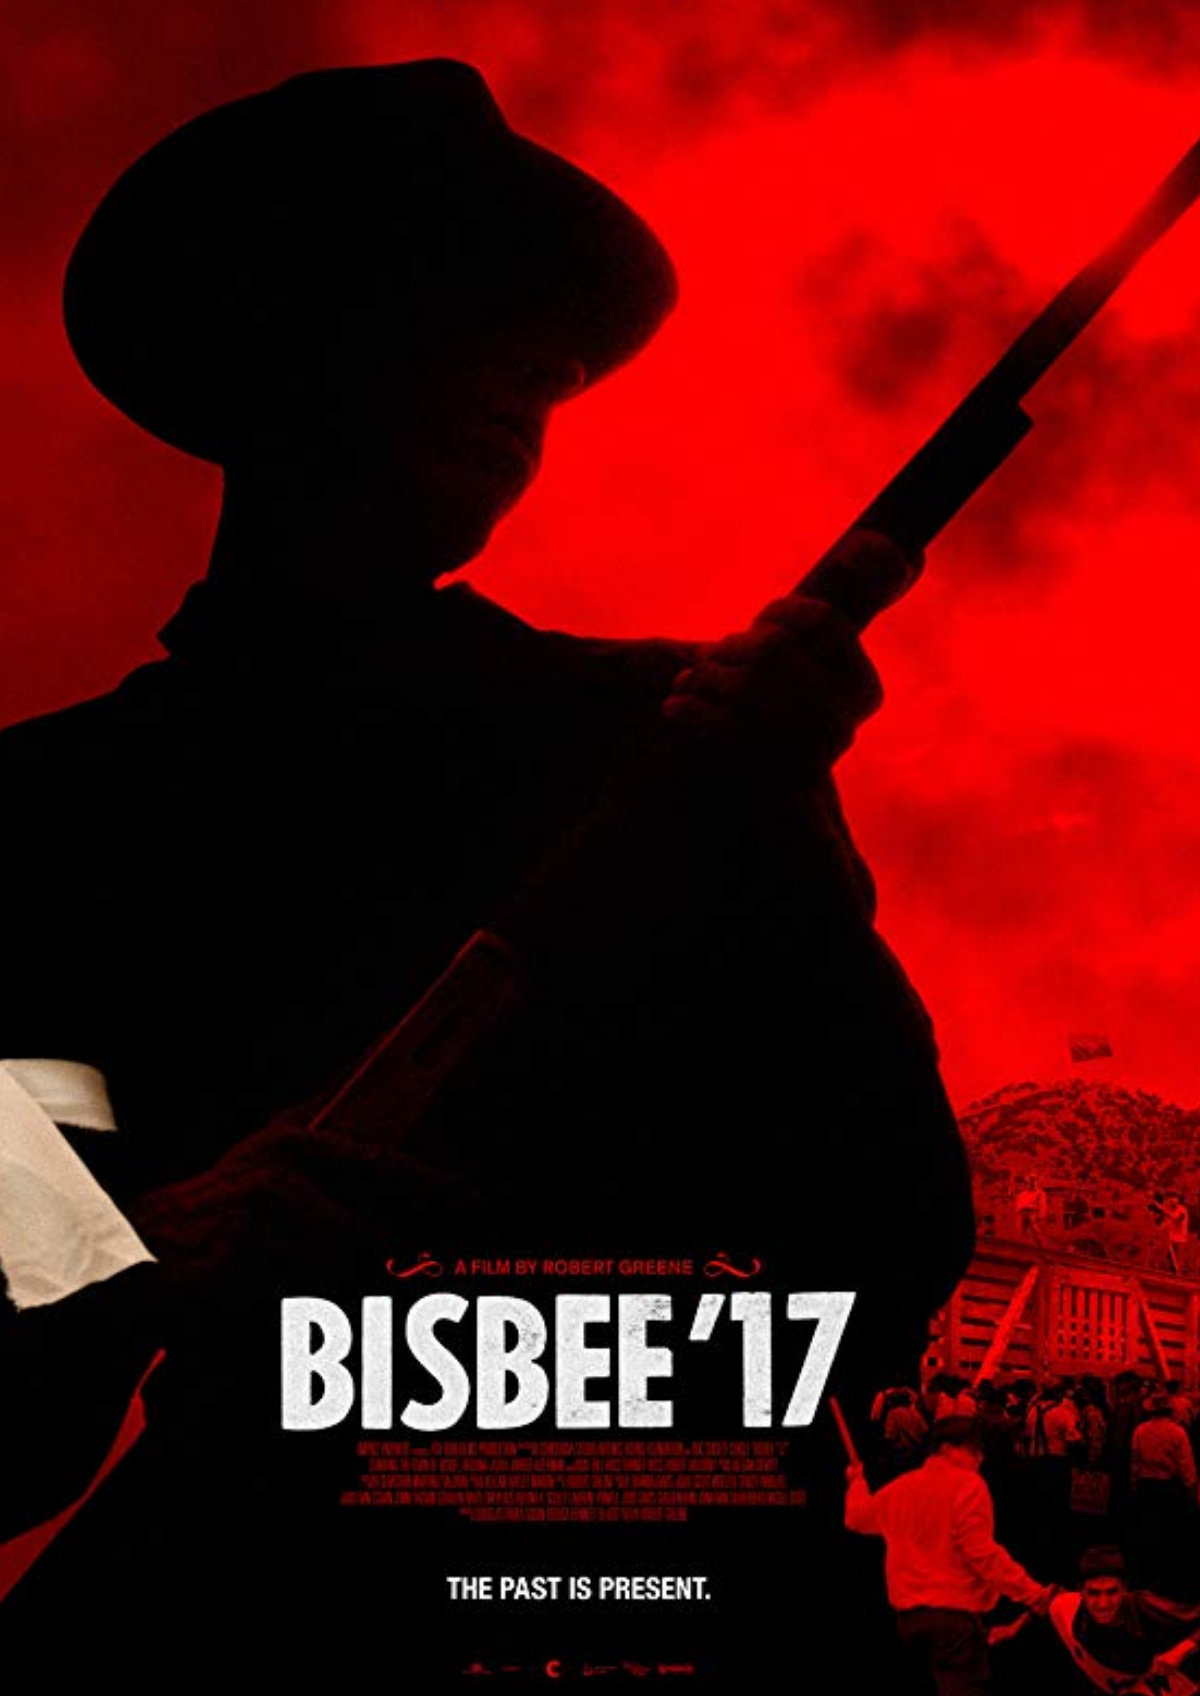 'Bisbee '17' movie poster